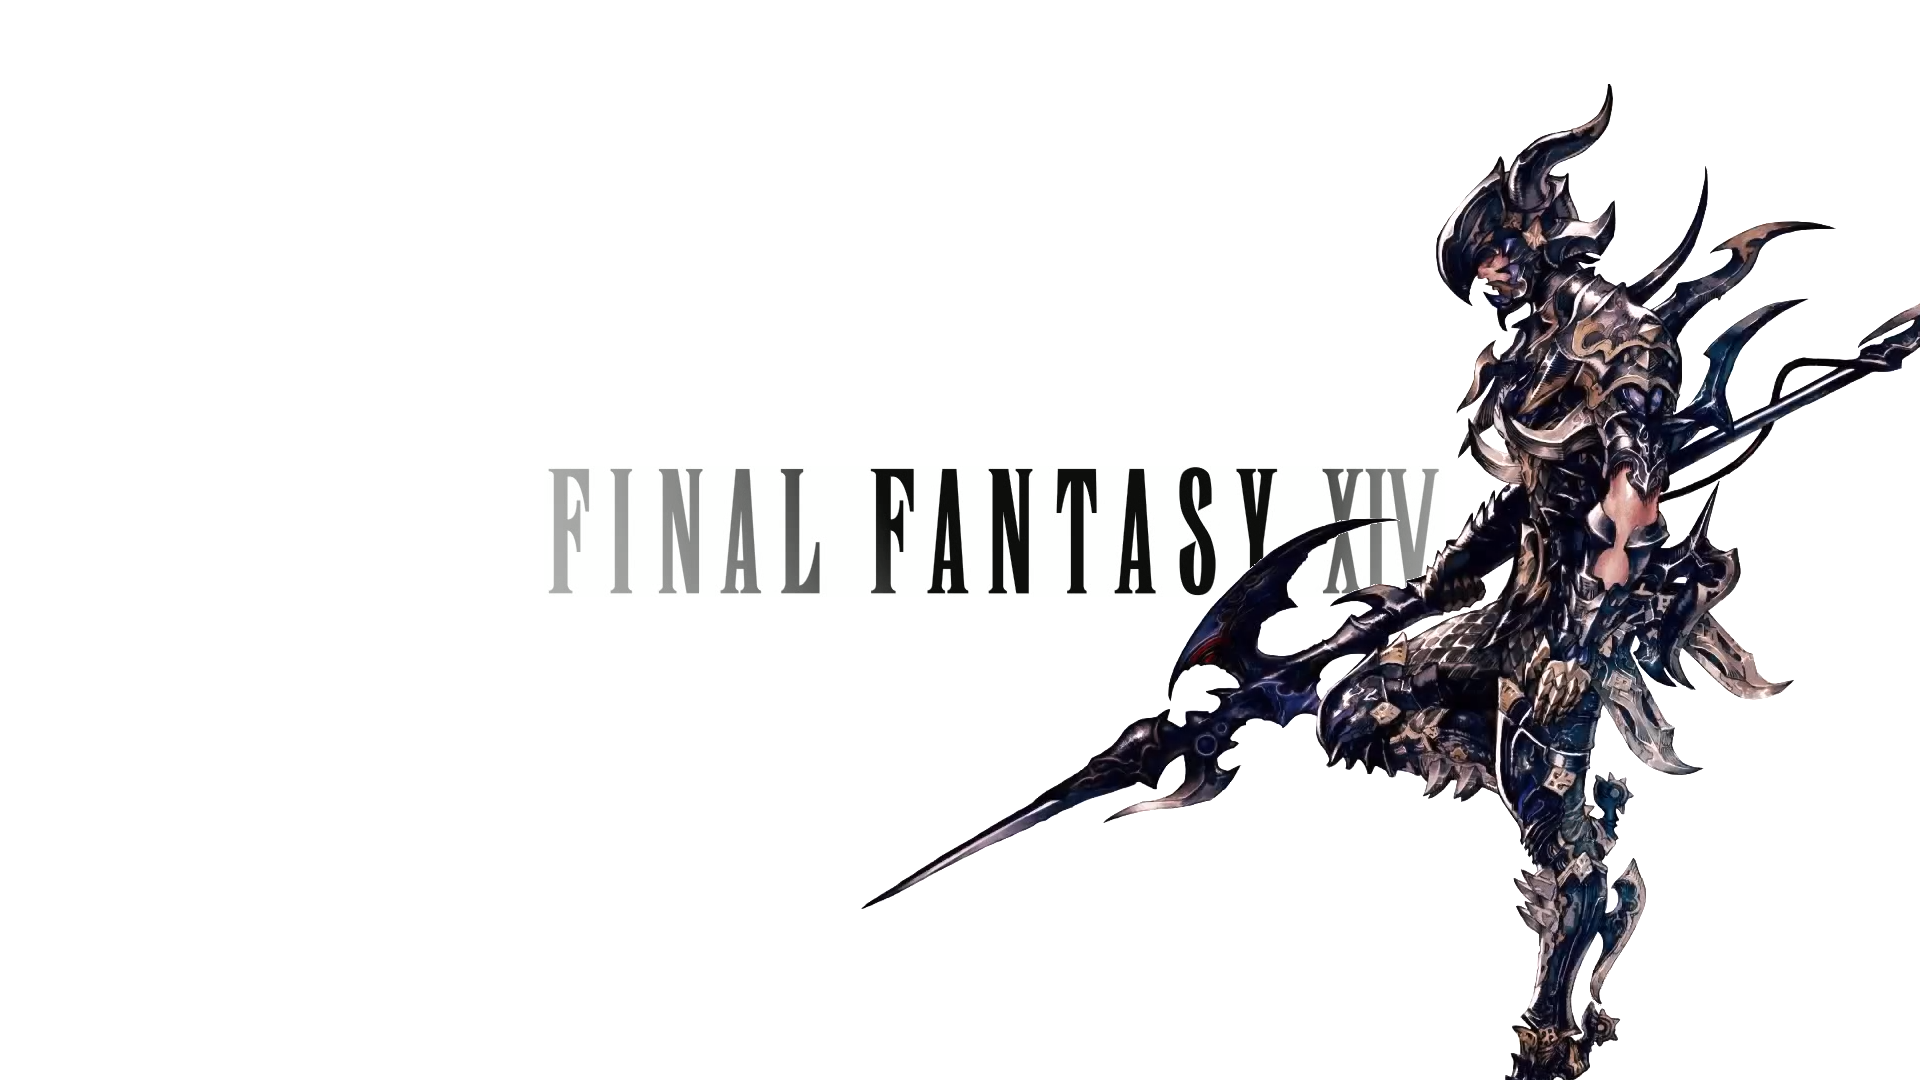 Final Fantasy XIV's seemingly unstoppable DDoS attack is ...